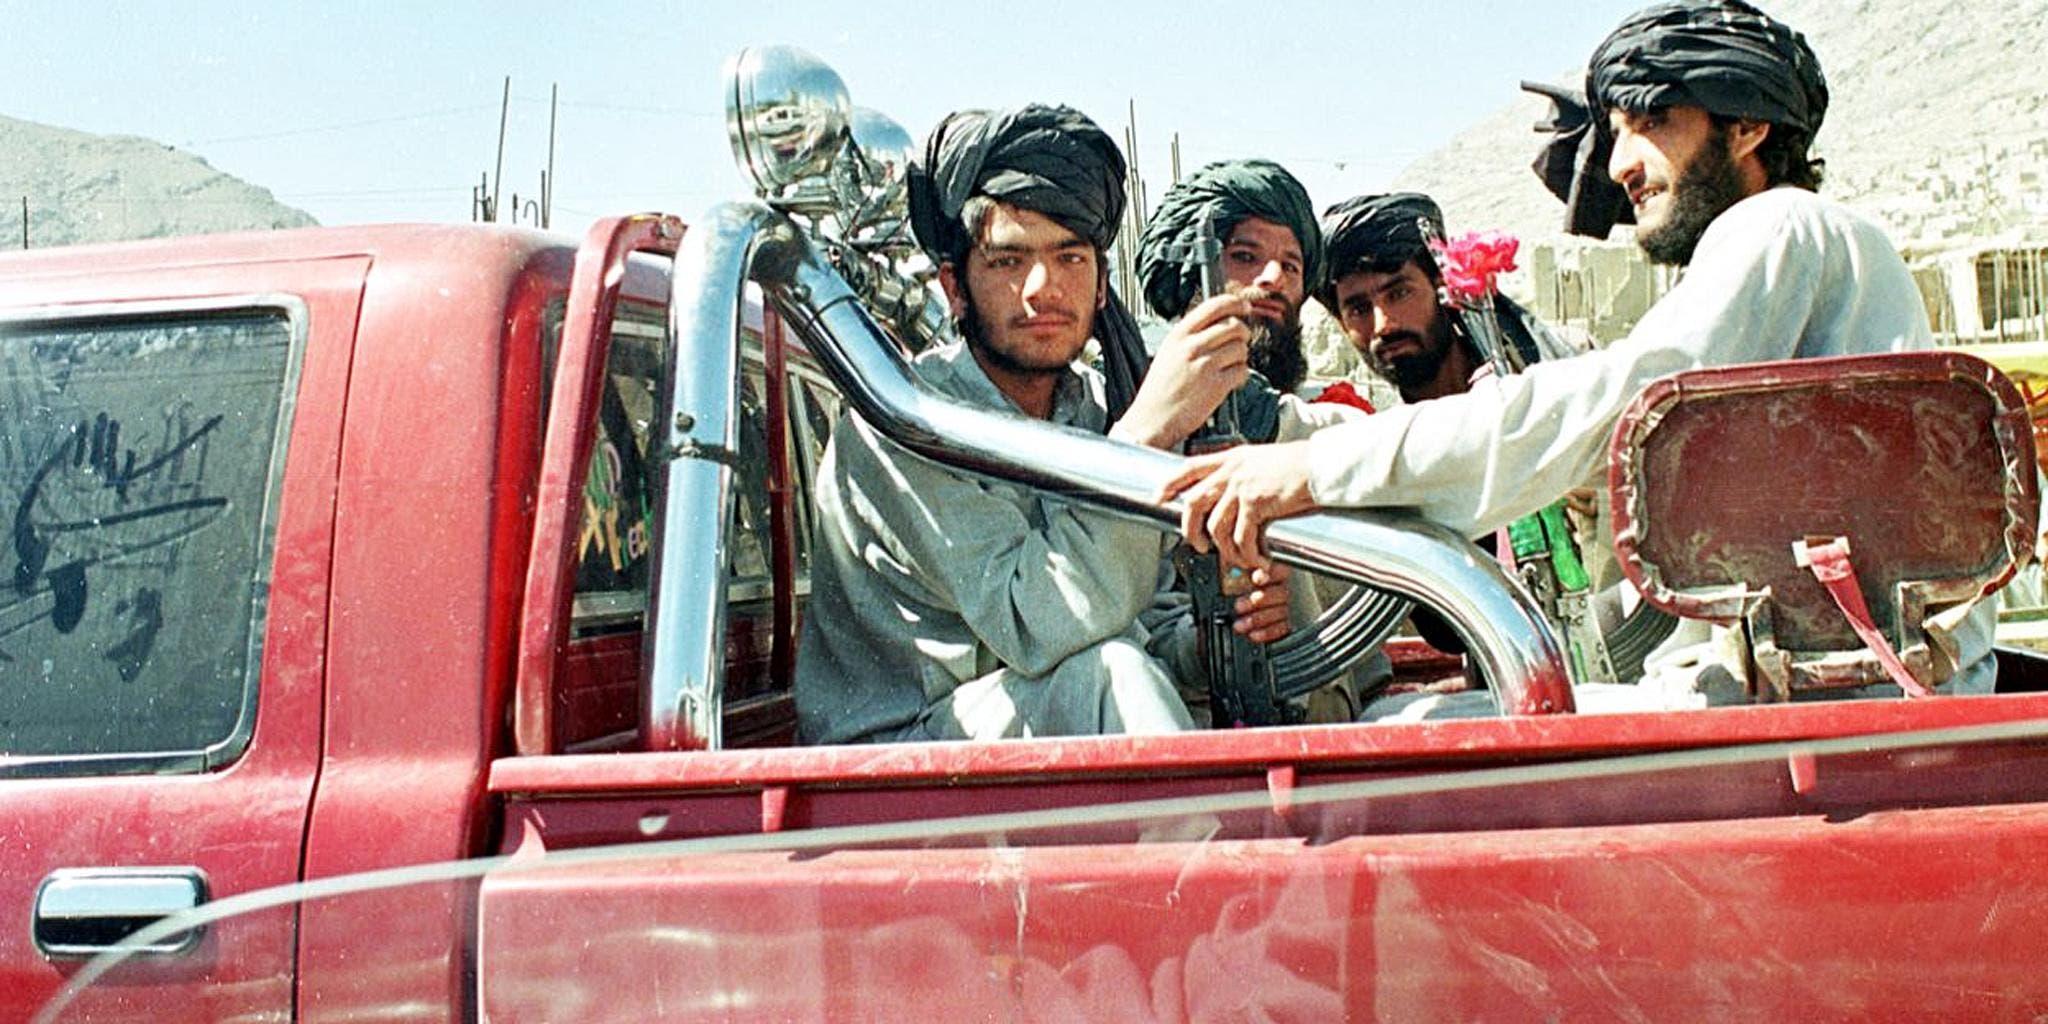 Afghan Taliban fighters sit in the back of a pick up truck on the way to the frontline north of Kabul, 27 September 2001.(File photo: AFP)